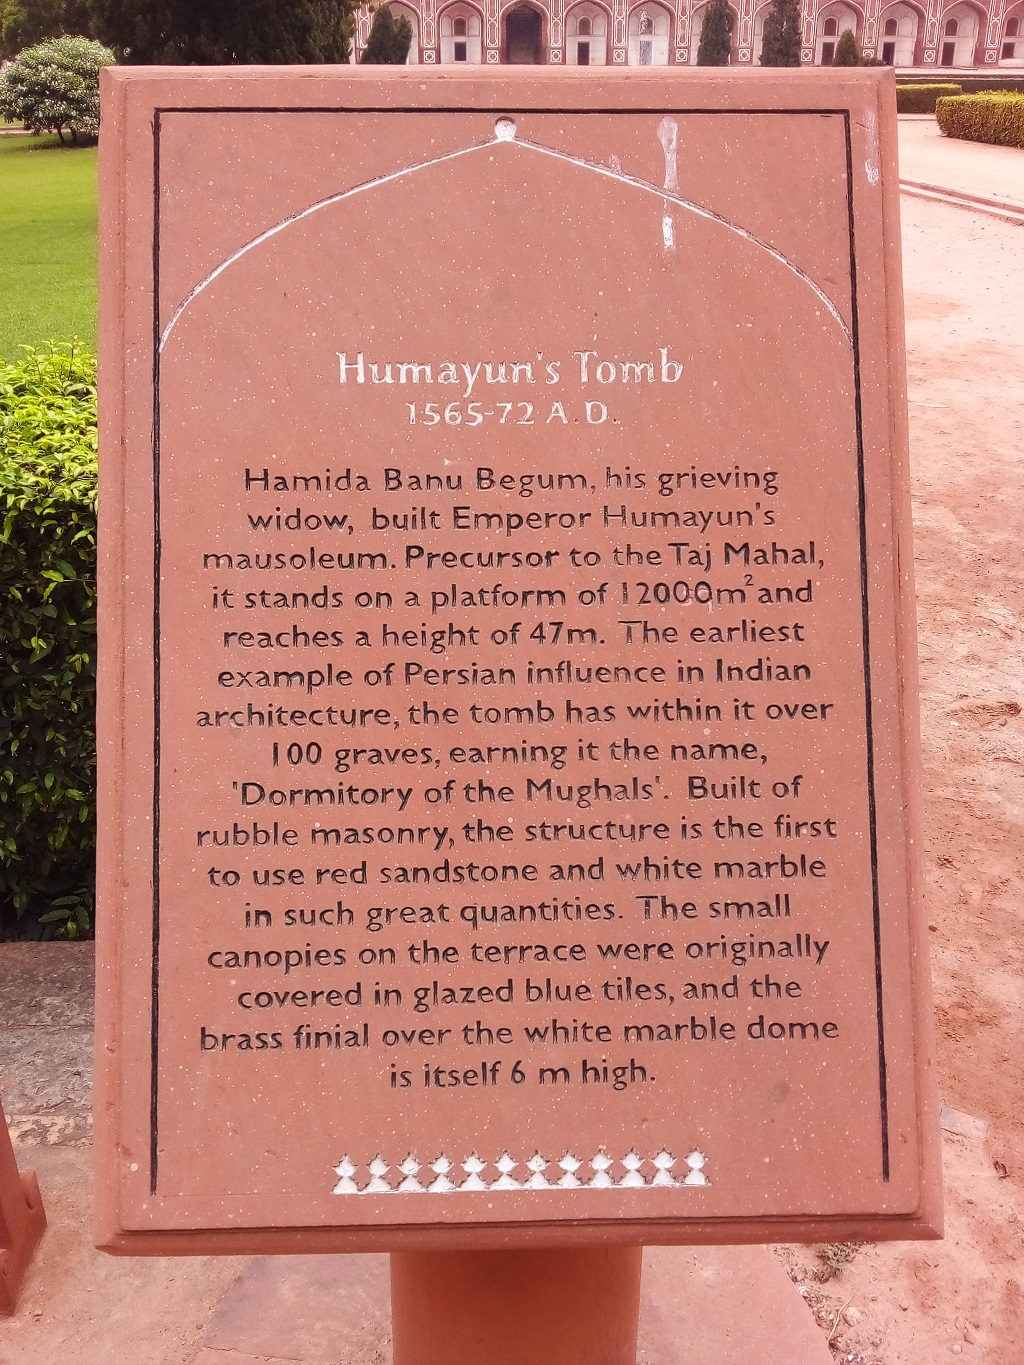 About – Humayun's Tomb (1565-72 A.D.)